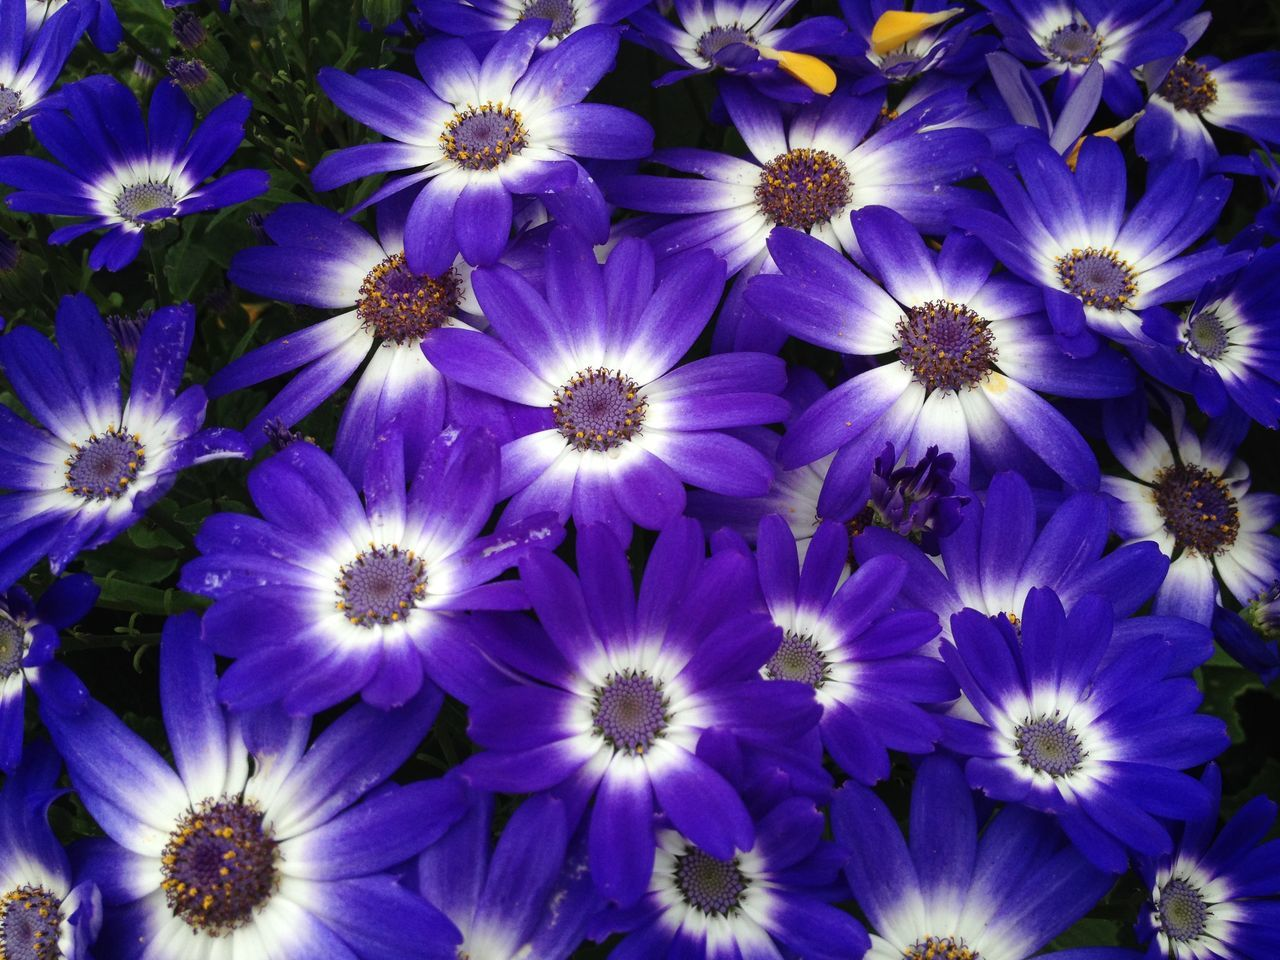 Cineraria flowers Abundance Beauty In Nature Blooming Blue Botany Cineraria Flower Flower Head Fragility Freshness Growth In Bloom Nature No People Outdoors Petal Plant Purple